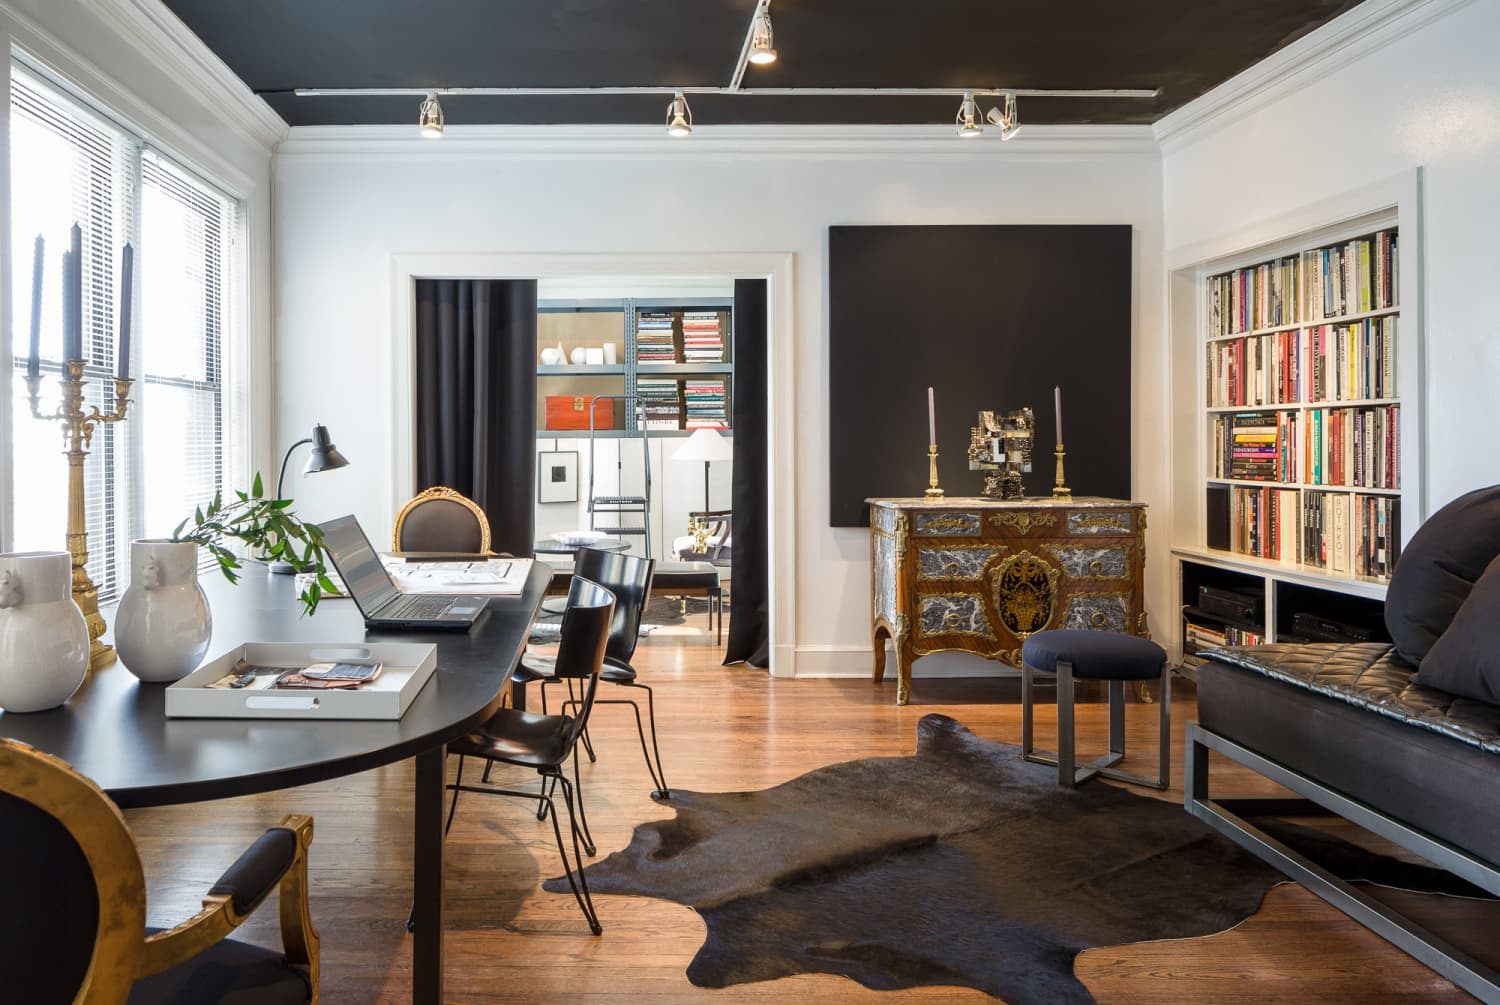 A Chicago Condo Makes Industrial Metal Carts, Tool Chests, and Acoustical Blankets Look Expensive and Luxe